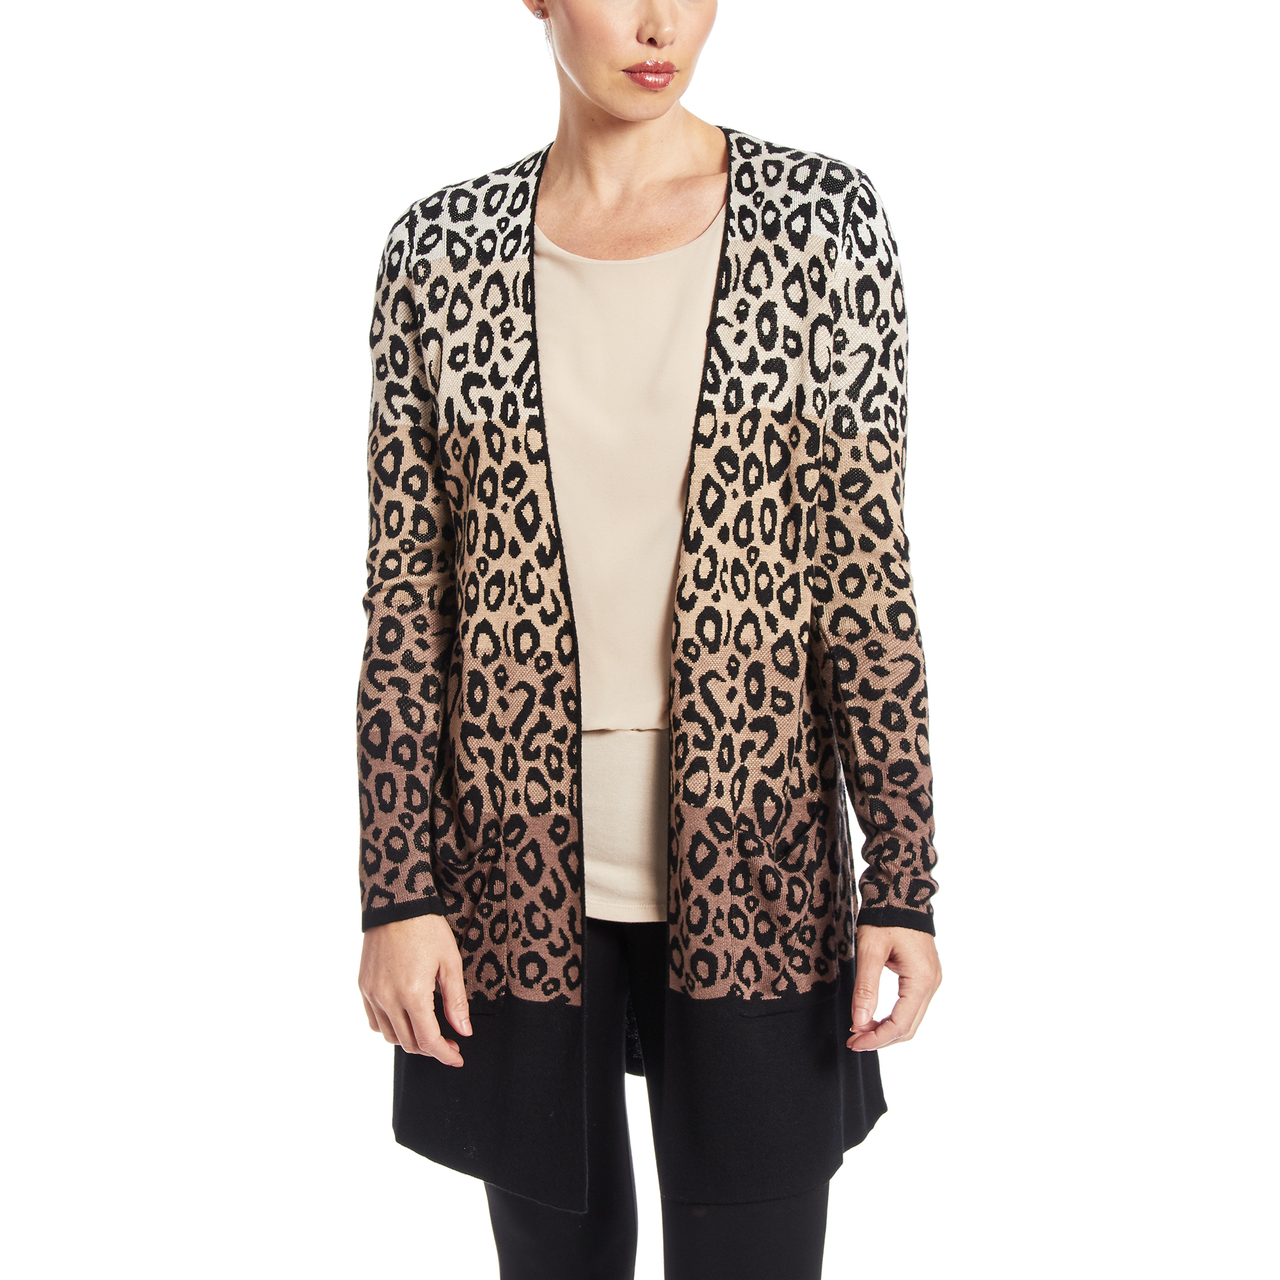 Two Pocket Duster in Animal Print